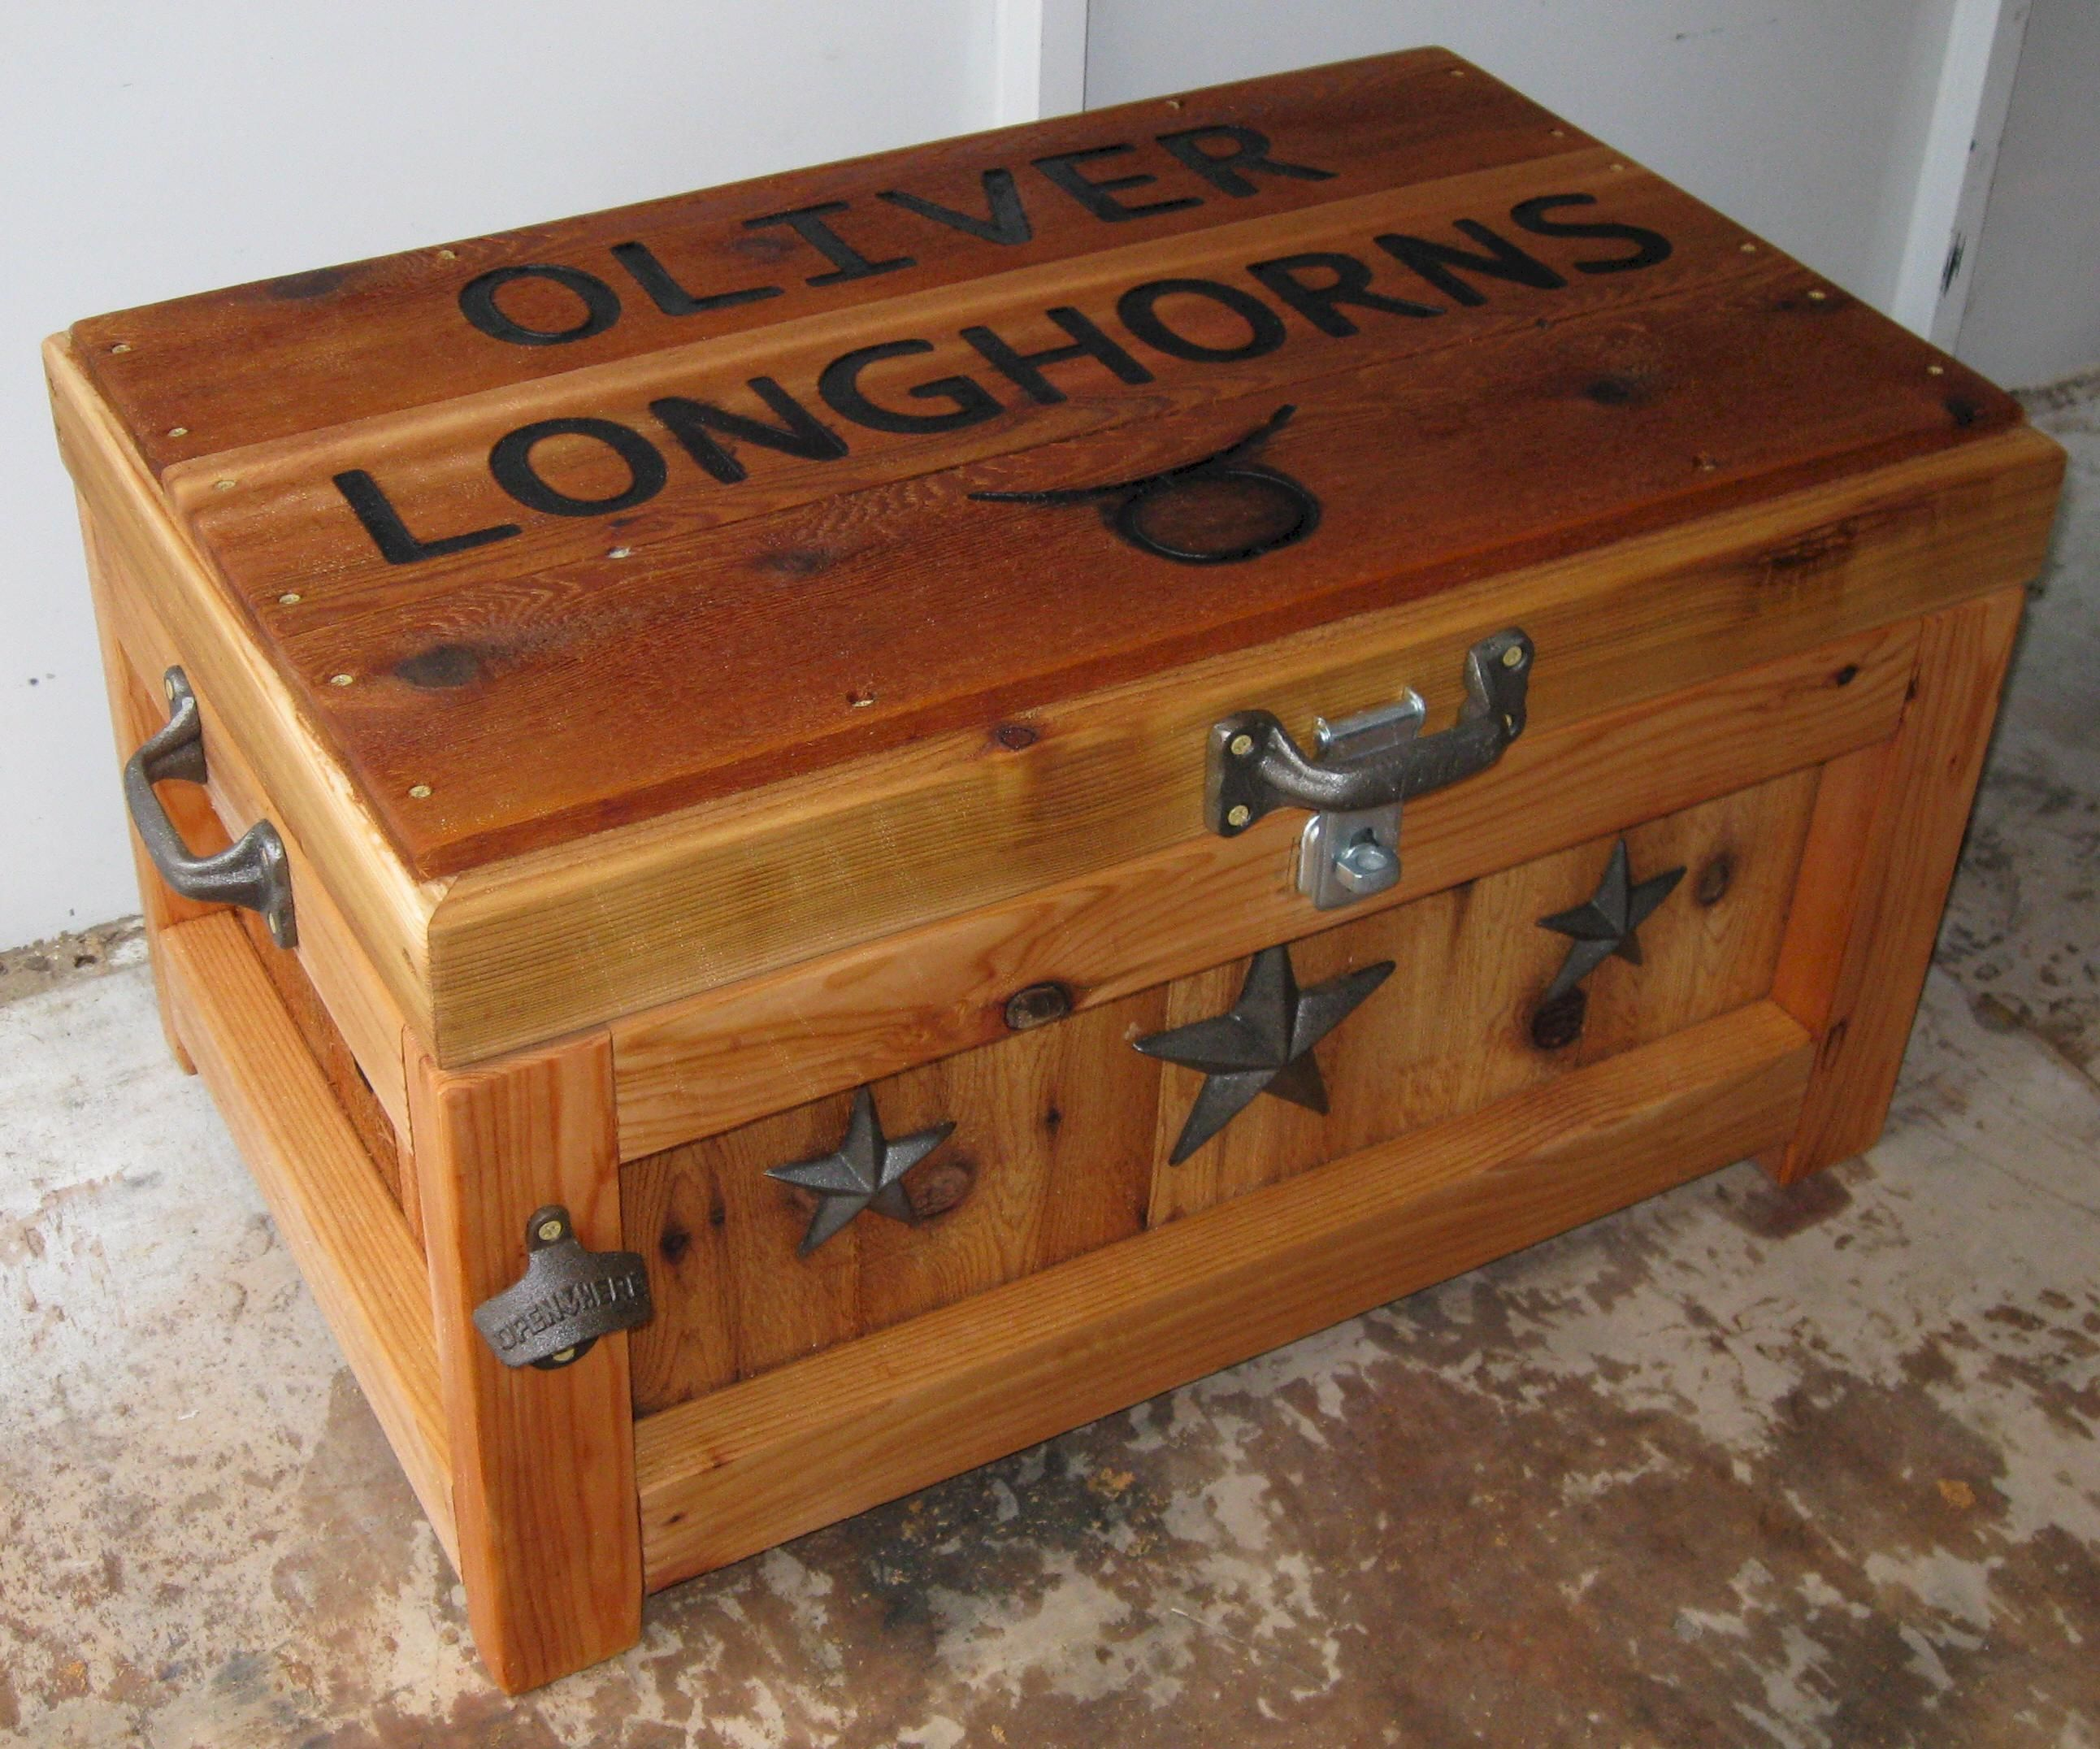 Antique Wooden Ice Chest Plans | New Home Decorations More